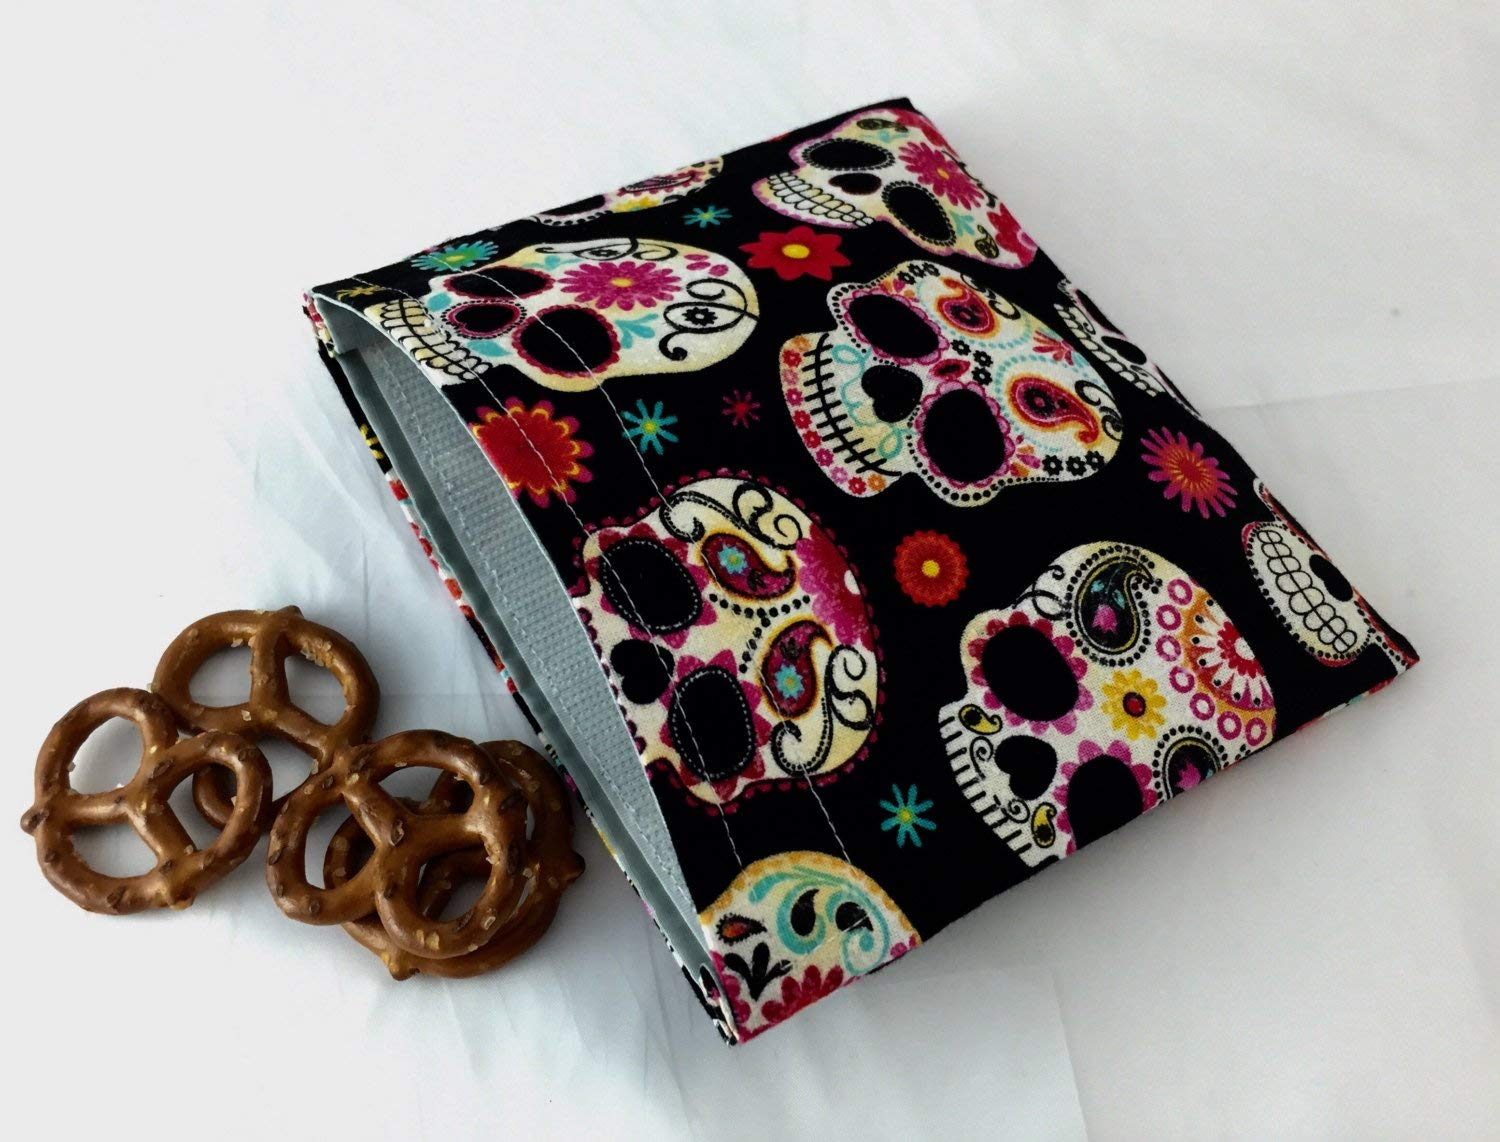 Reusable Snack Bag Eco-Friendly - Sugar Skulls Black